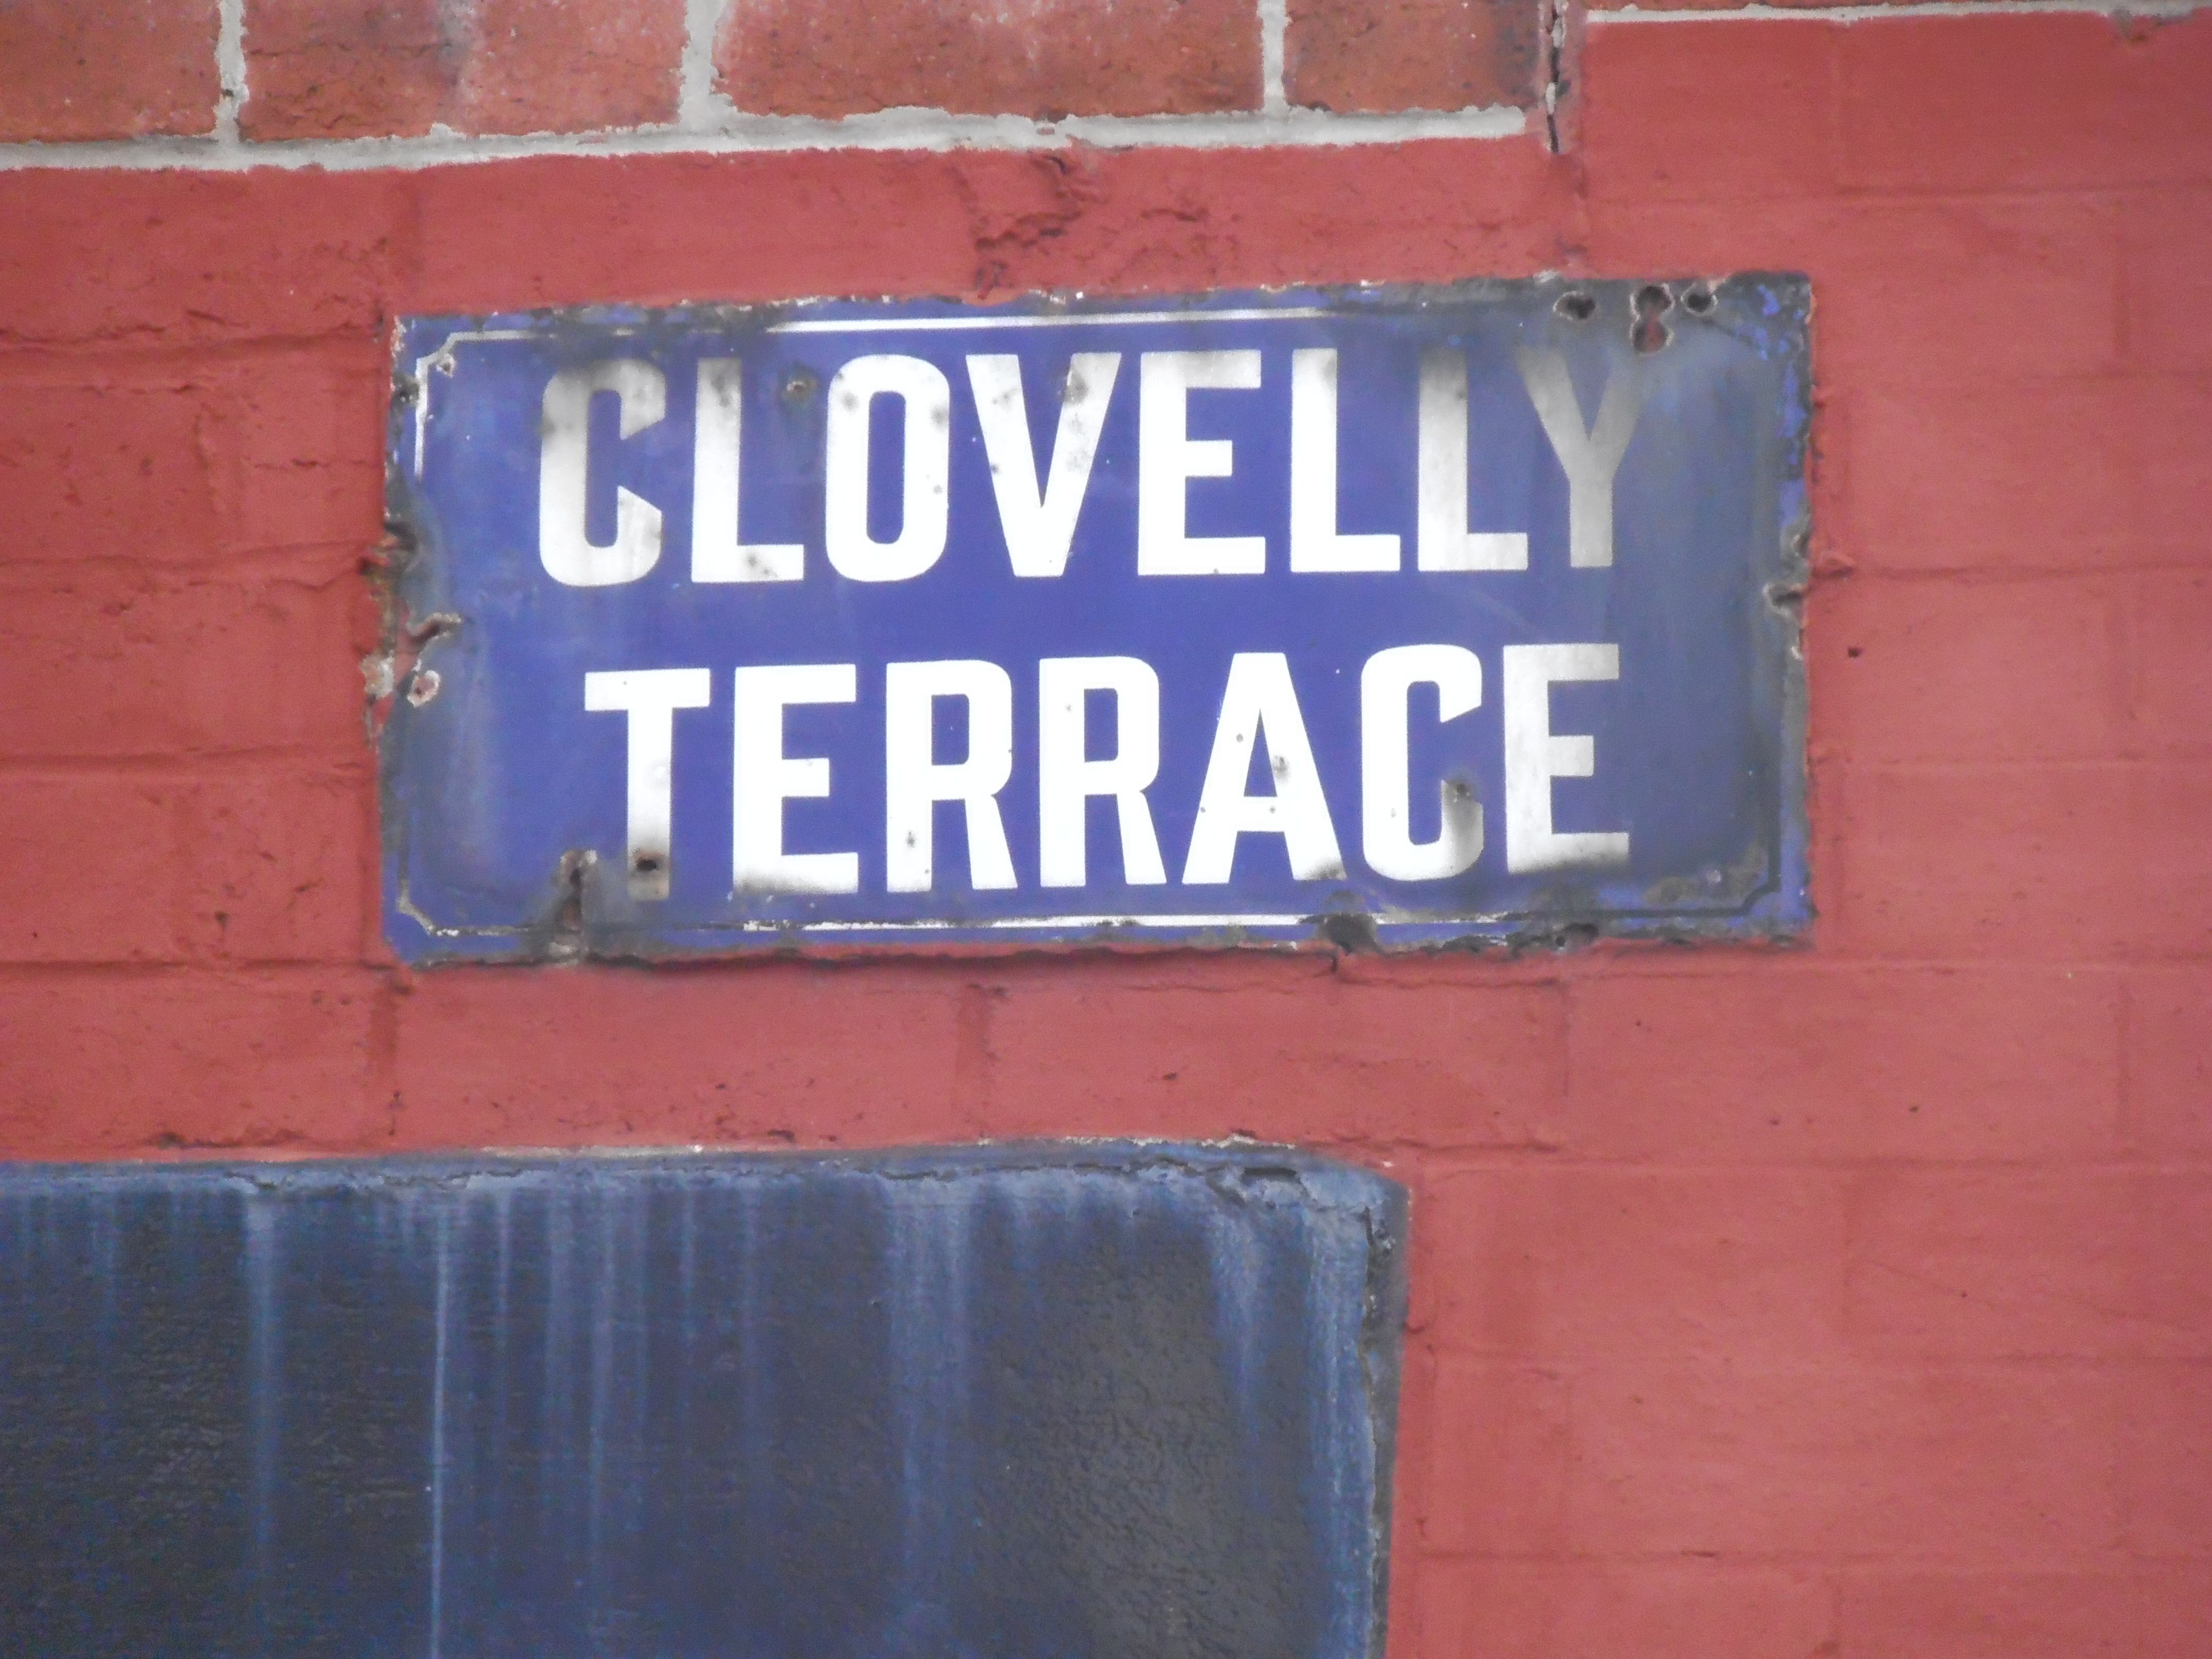 Clovelly Terrace.jpg